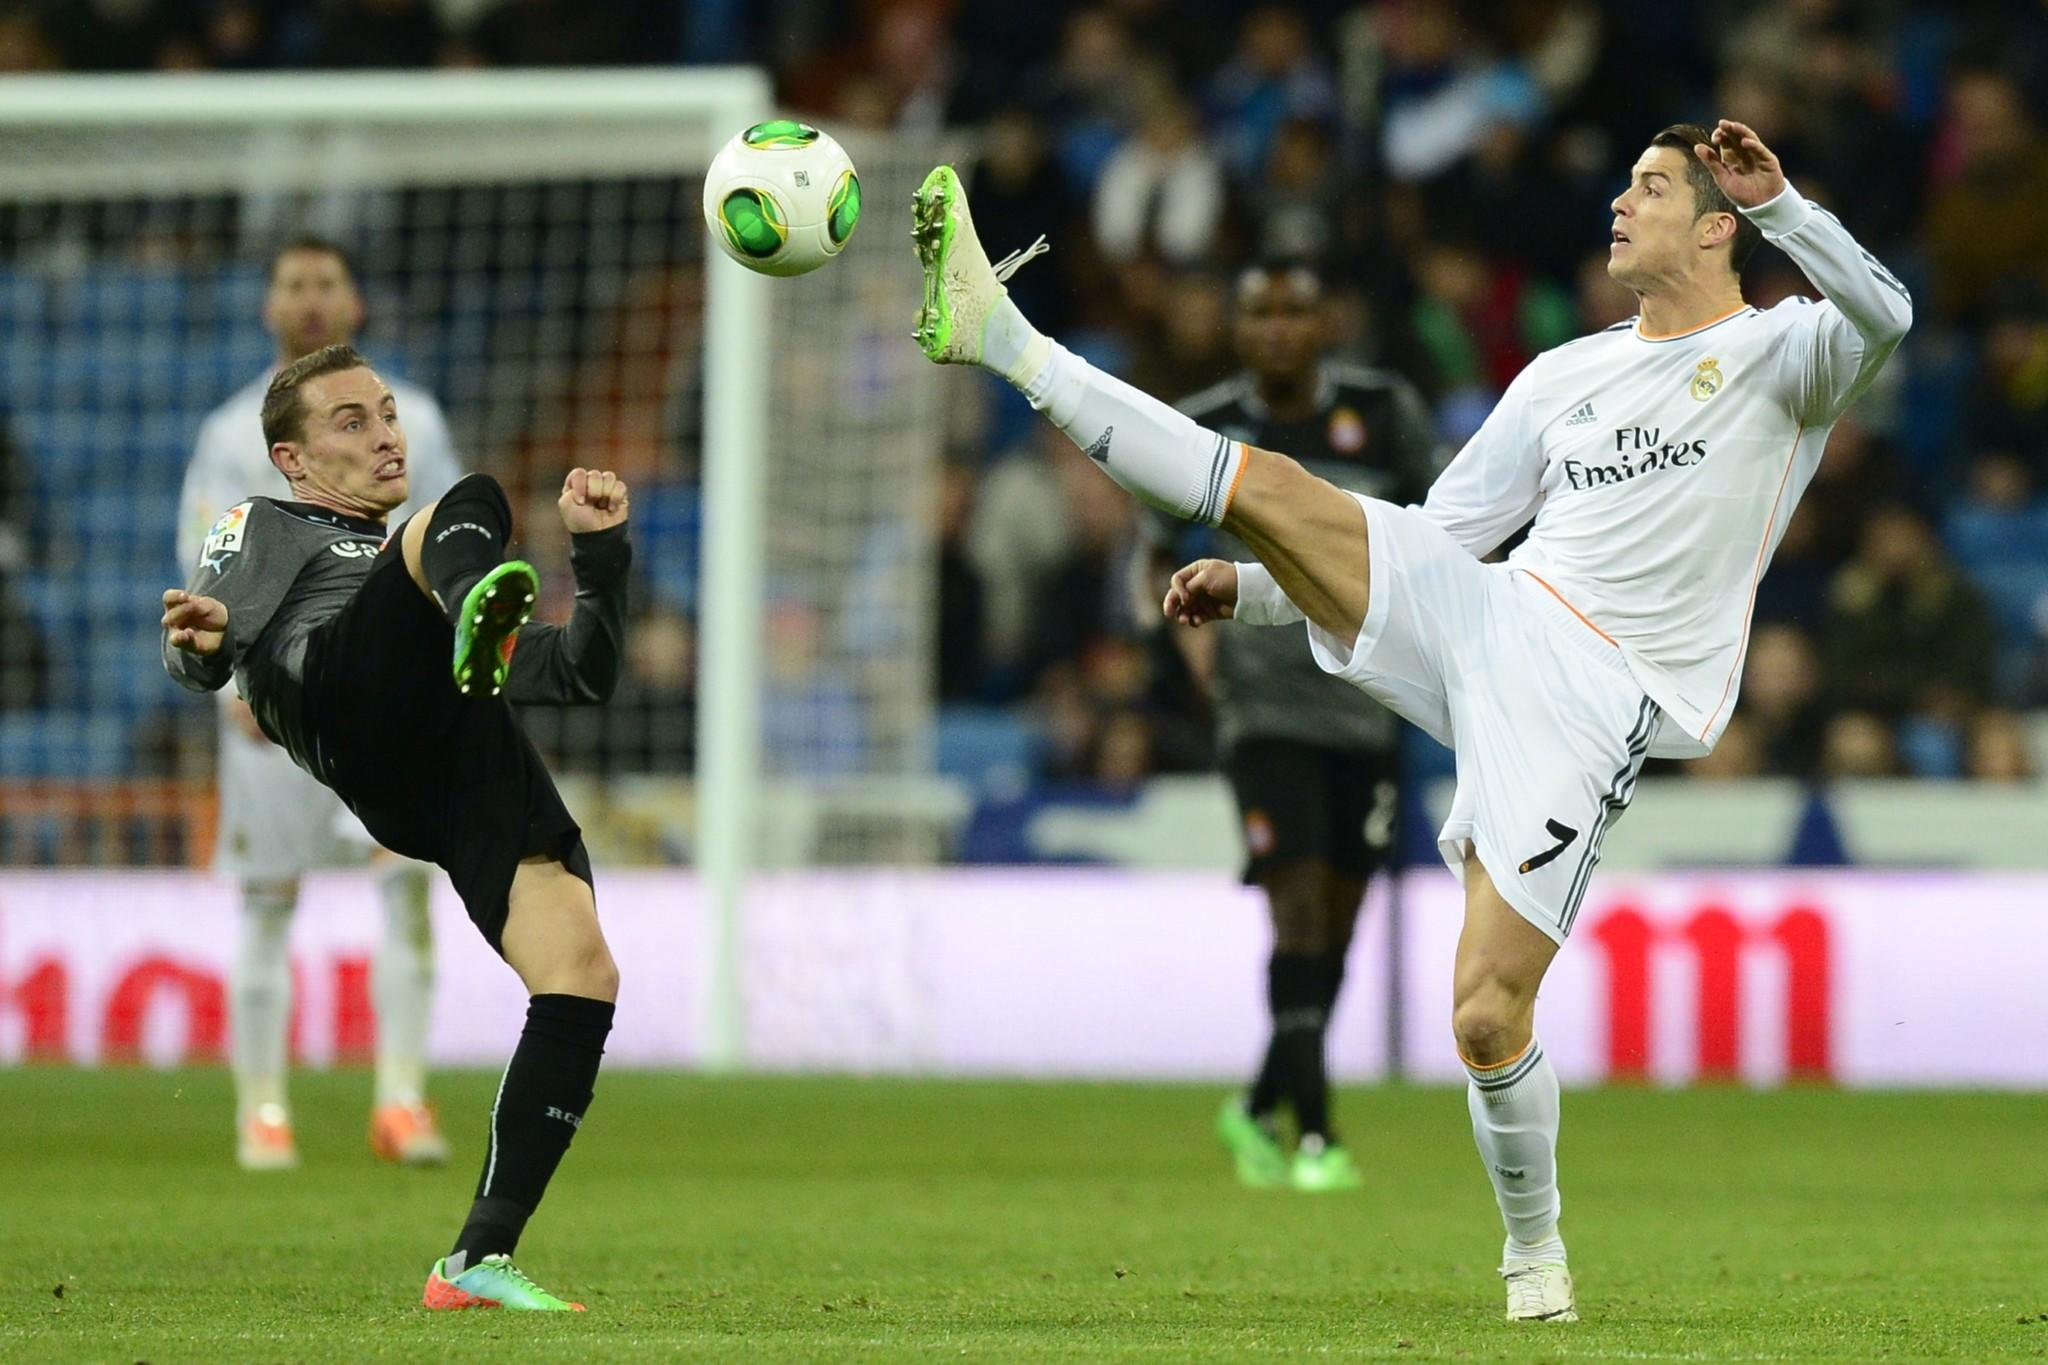 Real Madrid's Portuguese forward Cristiano Ronaldo (R) vies with Espanyol's midfielder Abraham during the Copa del Rey (King's Cup) quarter-final second leg football match Real Madrid vs Espanyol at Santiago Bernabeu stadium in Madrid on January 28, 2014.